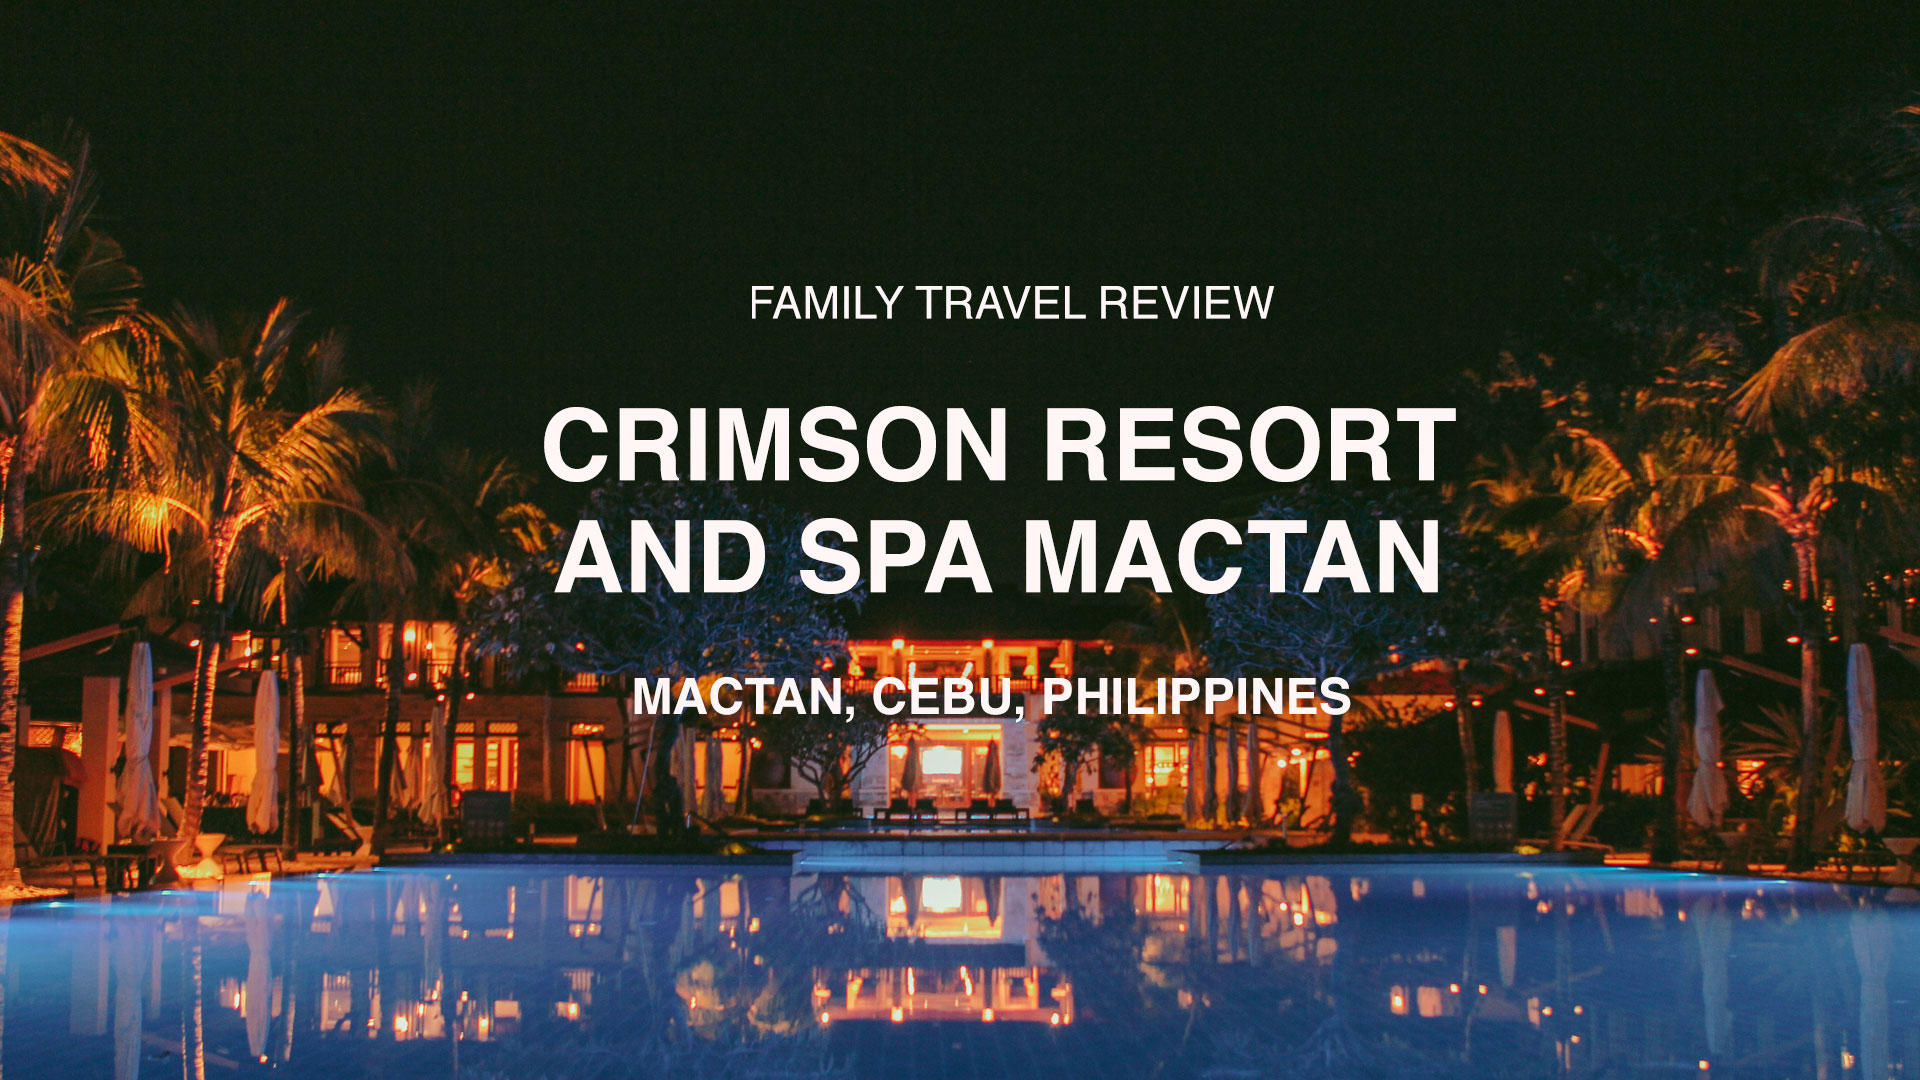 Relaxing Family Staycation at the Crimson Resort and Spa Mactan, Philippines